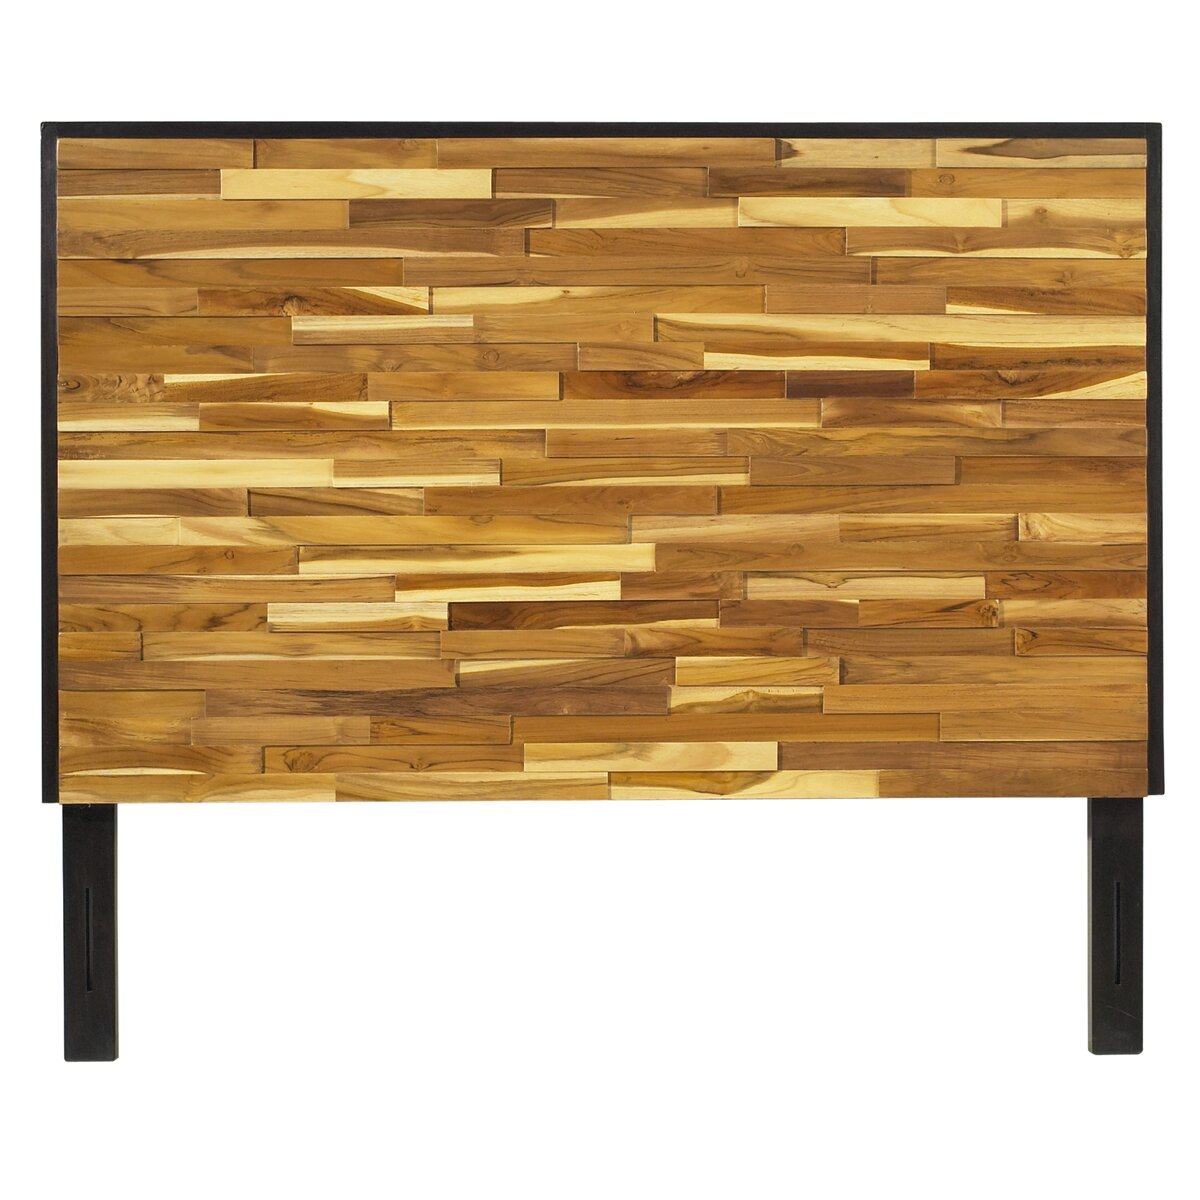 Wonderful image of Padmas Plantation Reclaimed Wood Headboard & Reviews Wayfair with #A97E22 color and 1200x1200 pixels